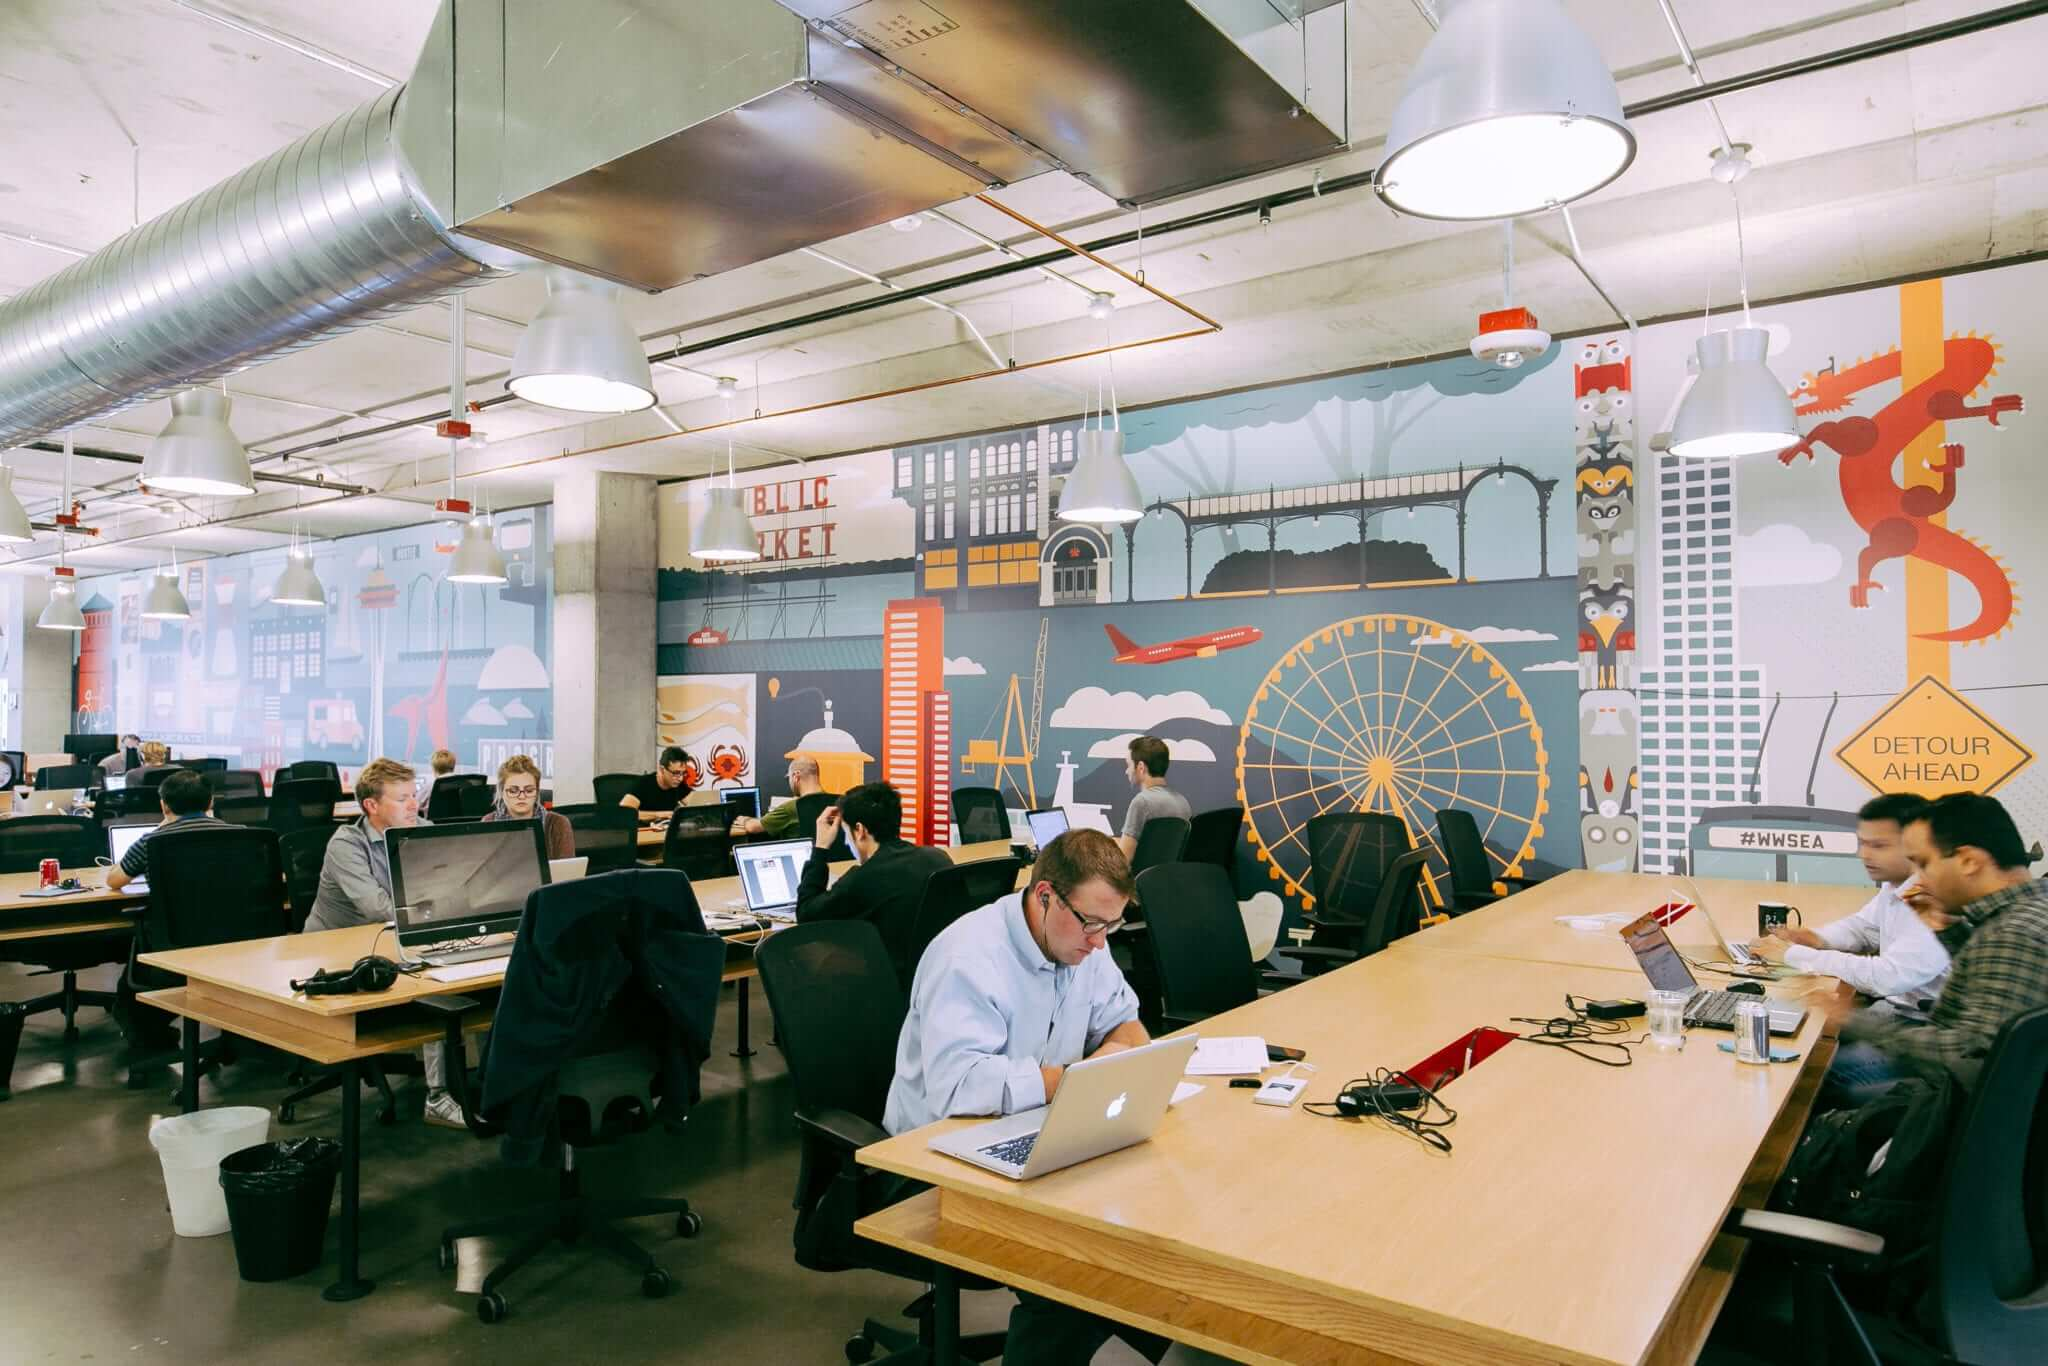 Coworking Spaces How Freeaxez Can Help Manage Diverse Cable Management Needs